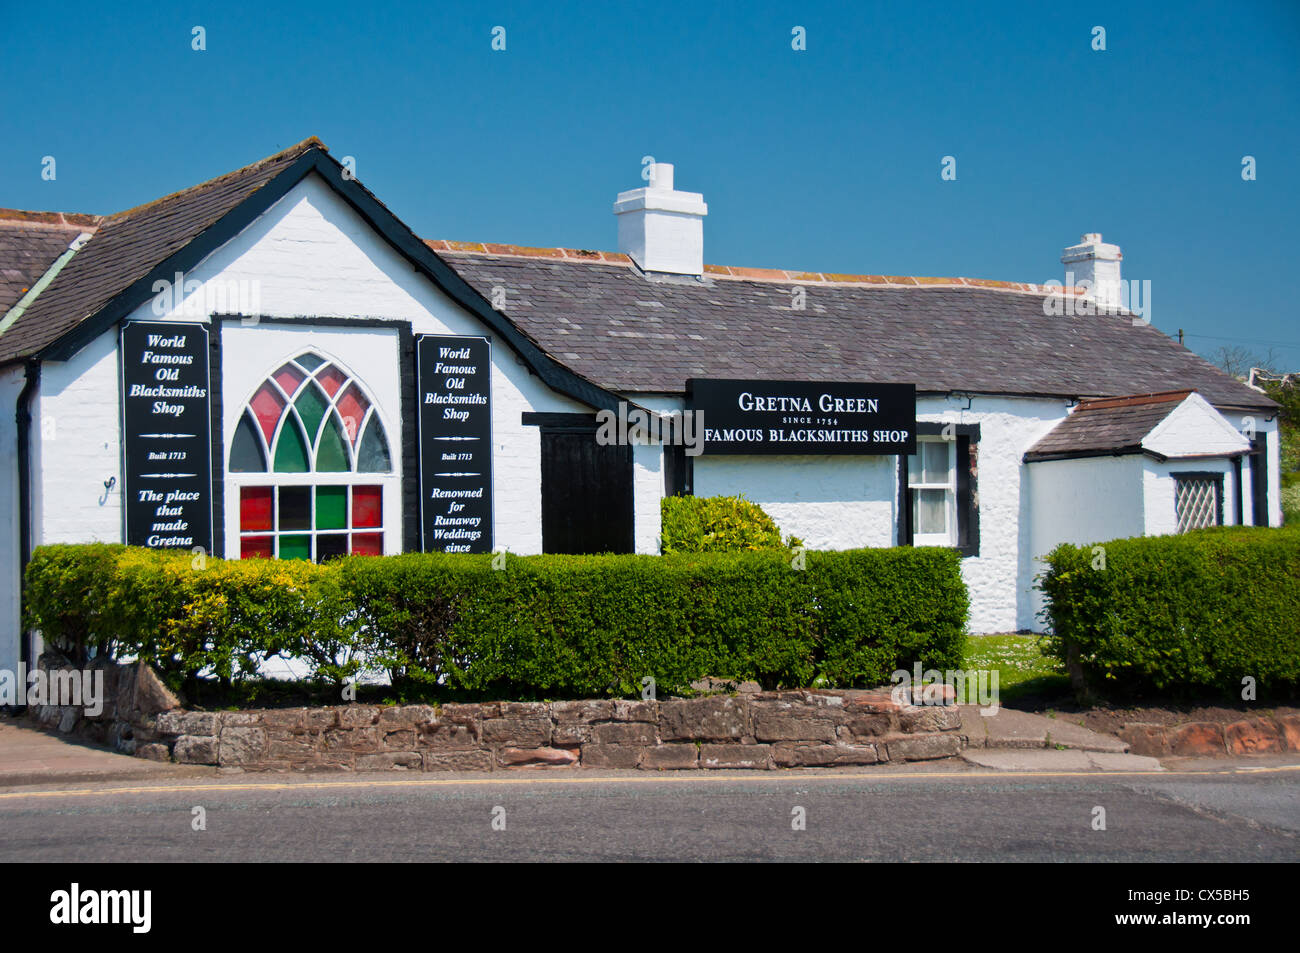 Famous Blacksmith shop, Gretna Green, Scotland. Wedding venue for young eloping couples. - Stock Image